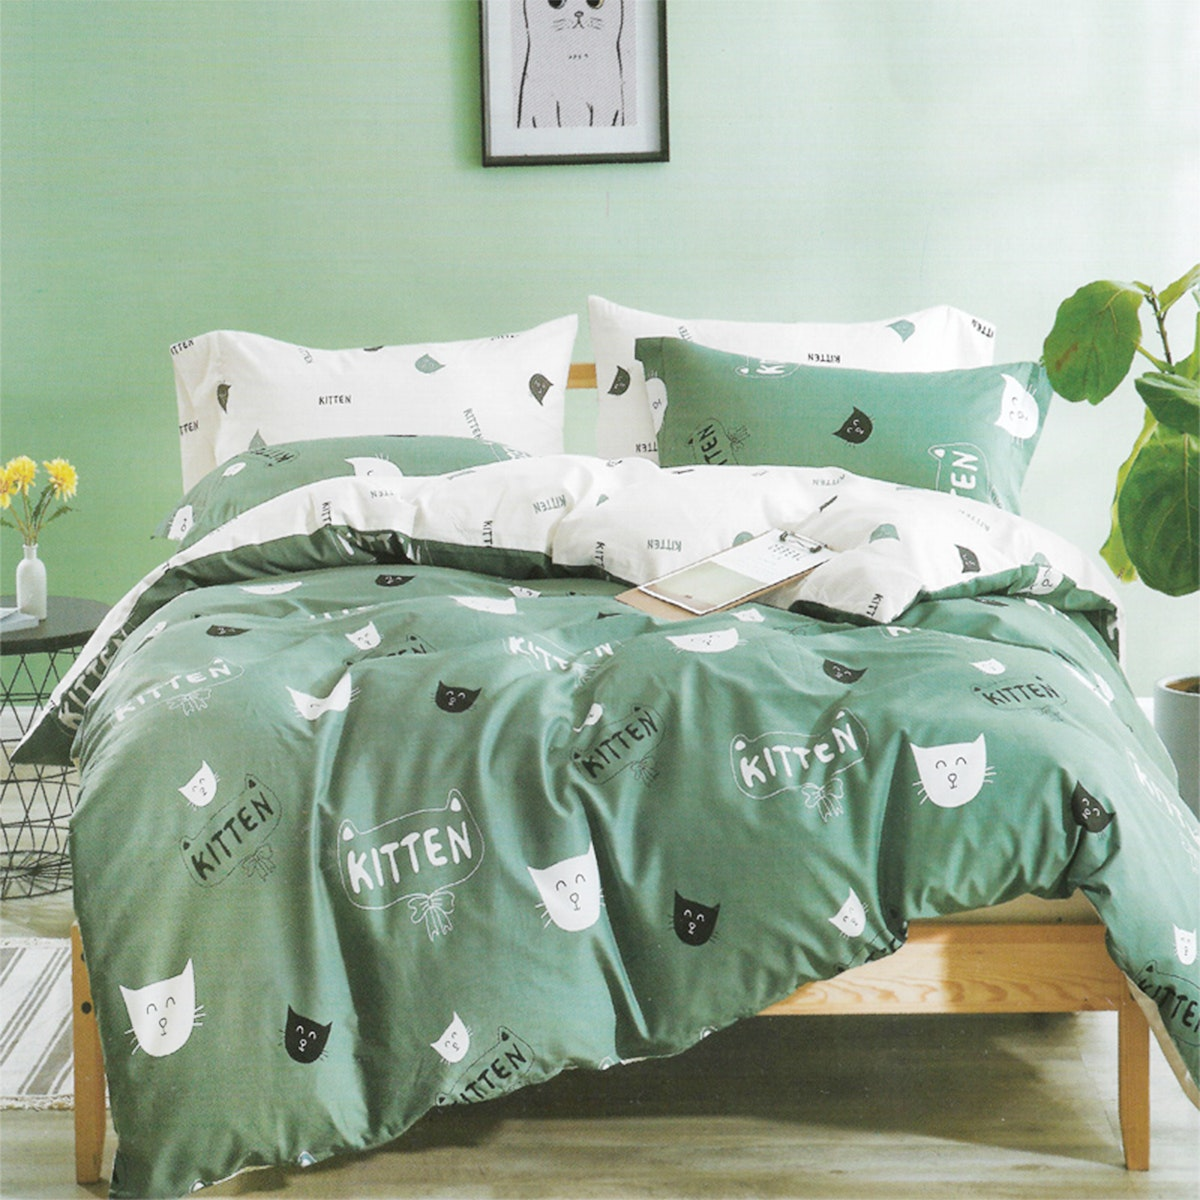 Sleep Buddy Set Sprei dan bed cover Kitty Cat Cotton Sateen 180x200x30